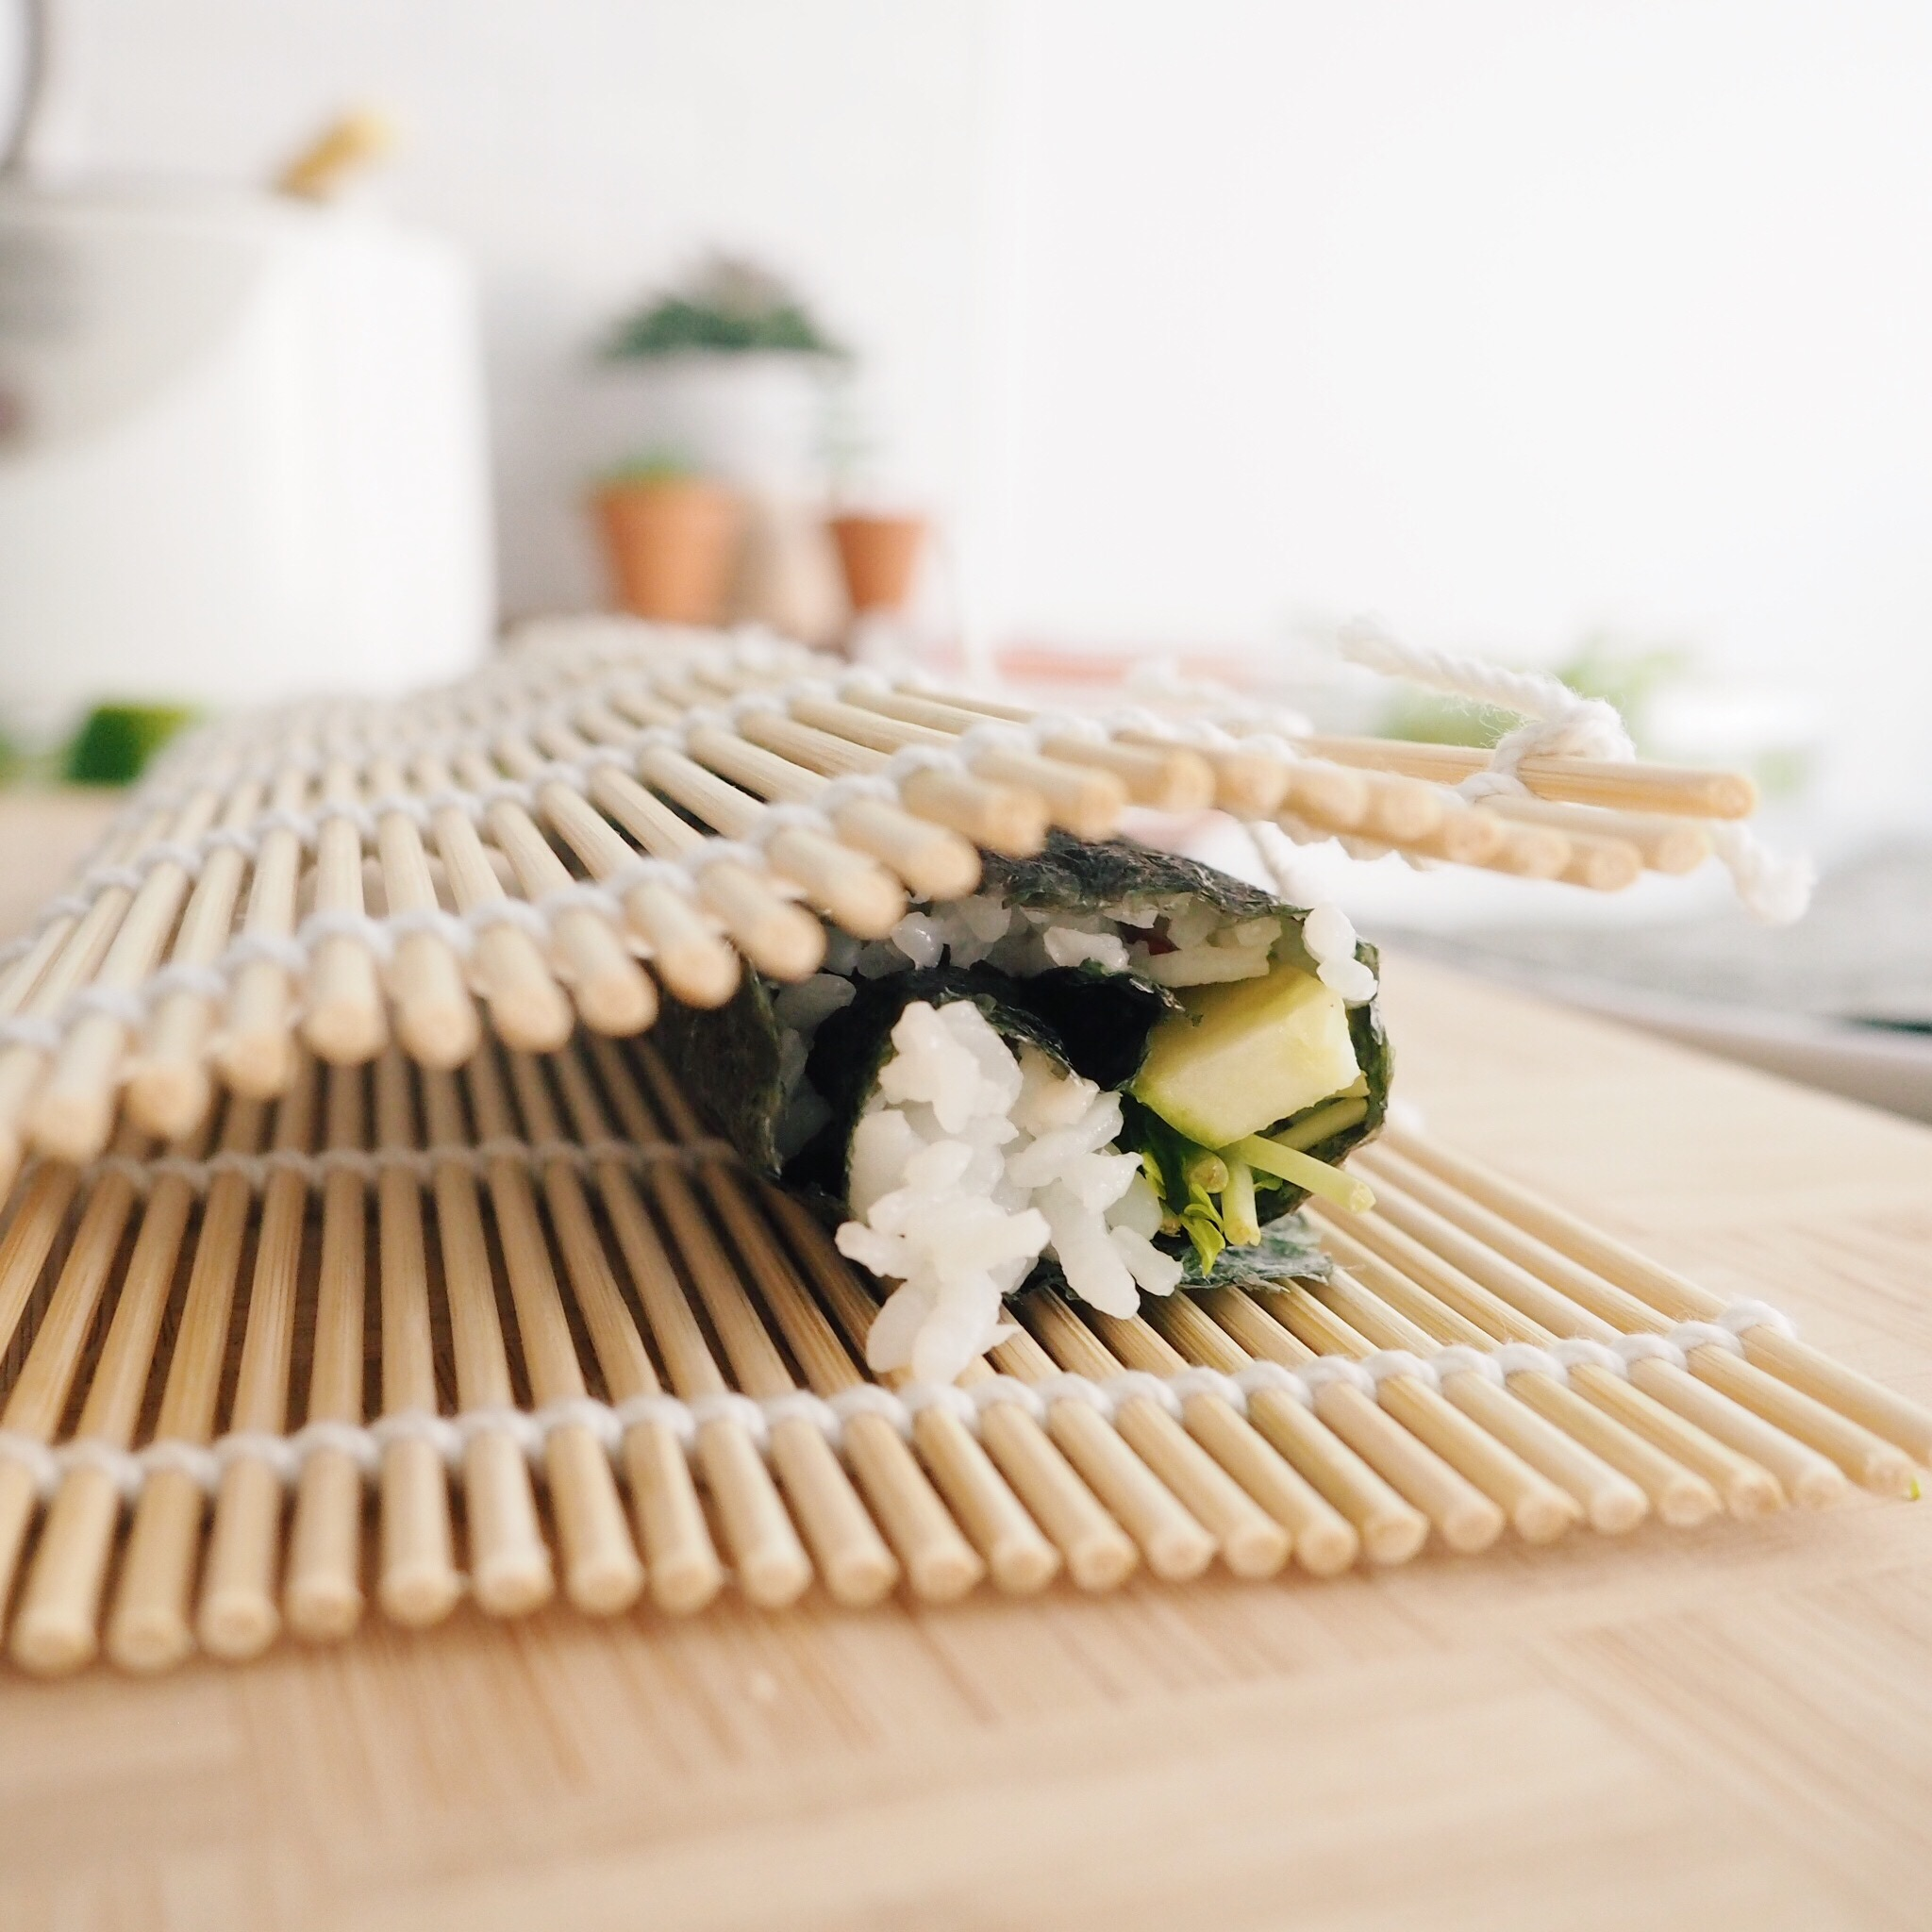 Step 5: Continue rolling until you reach the end. Using water or several rice granules, use it to help stick the seaweed flap against your roll for a tidy finish.